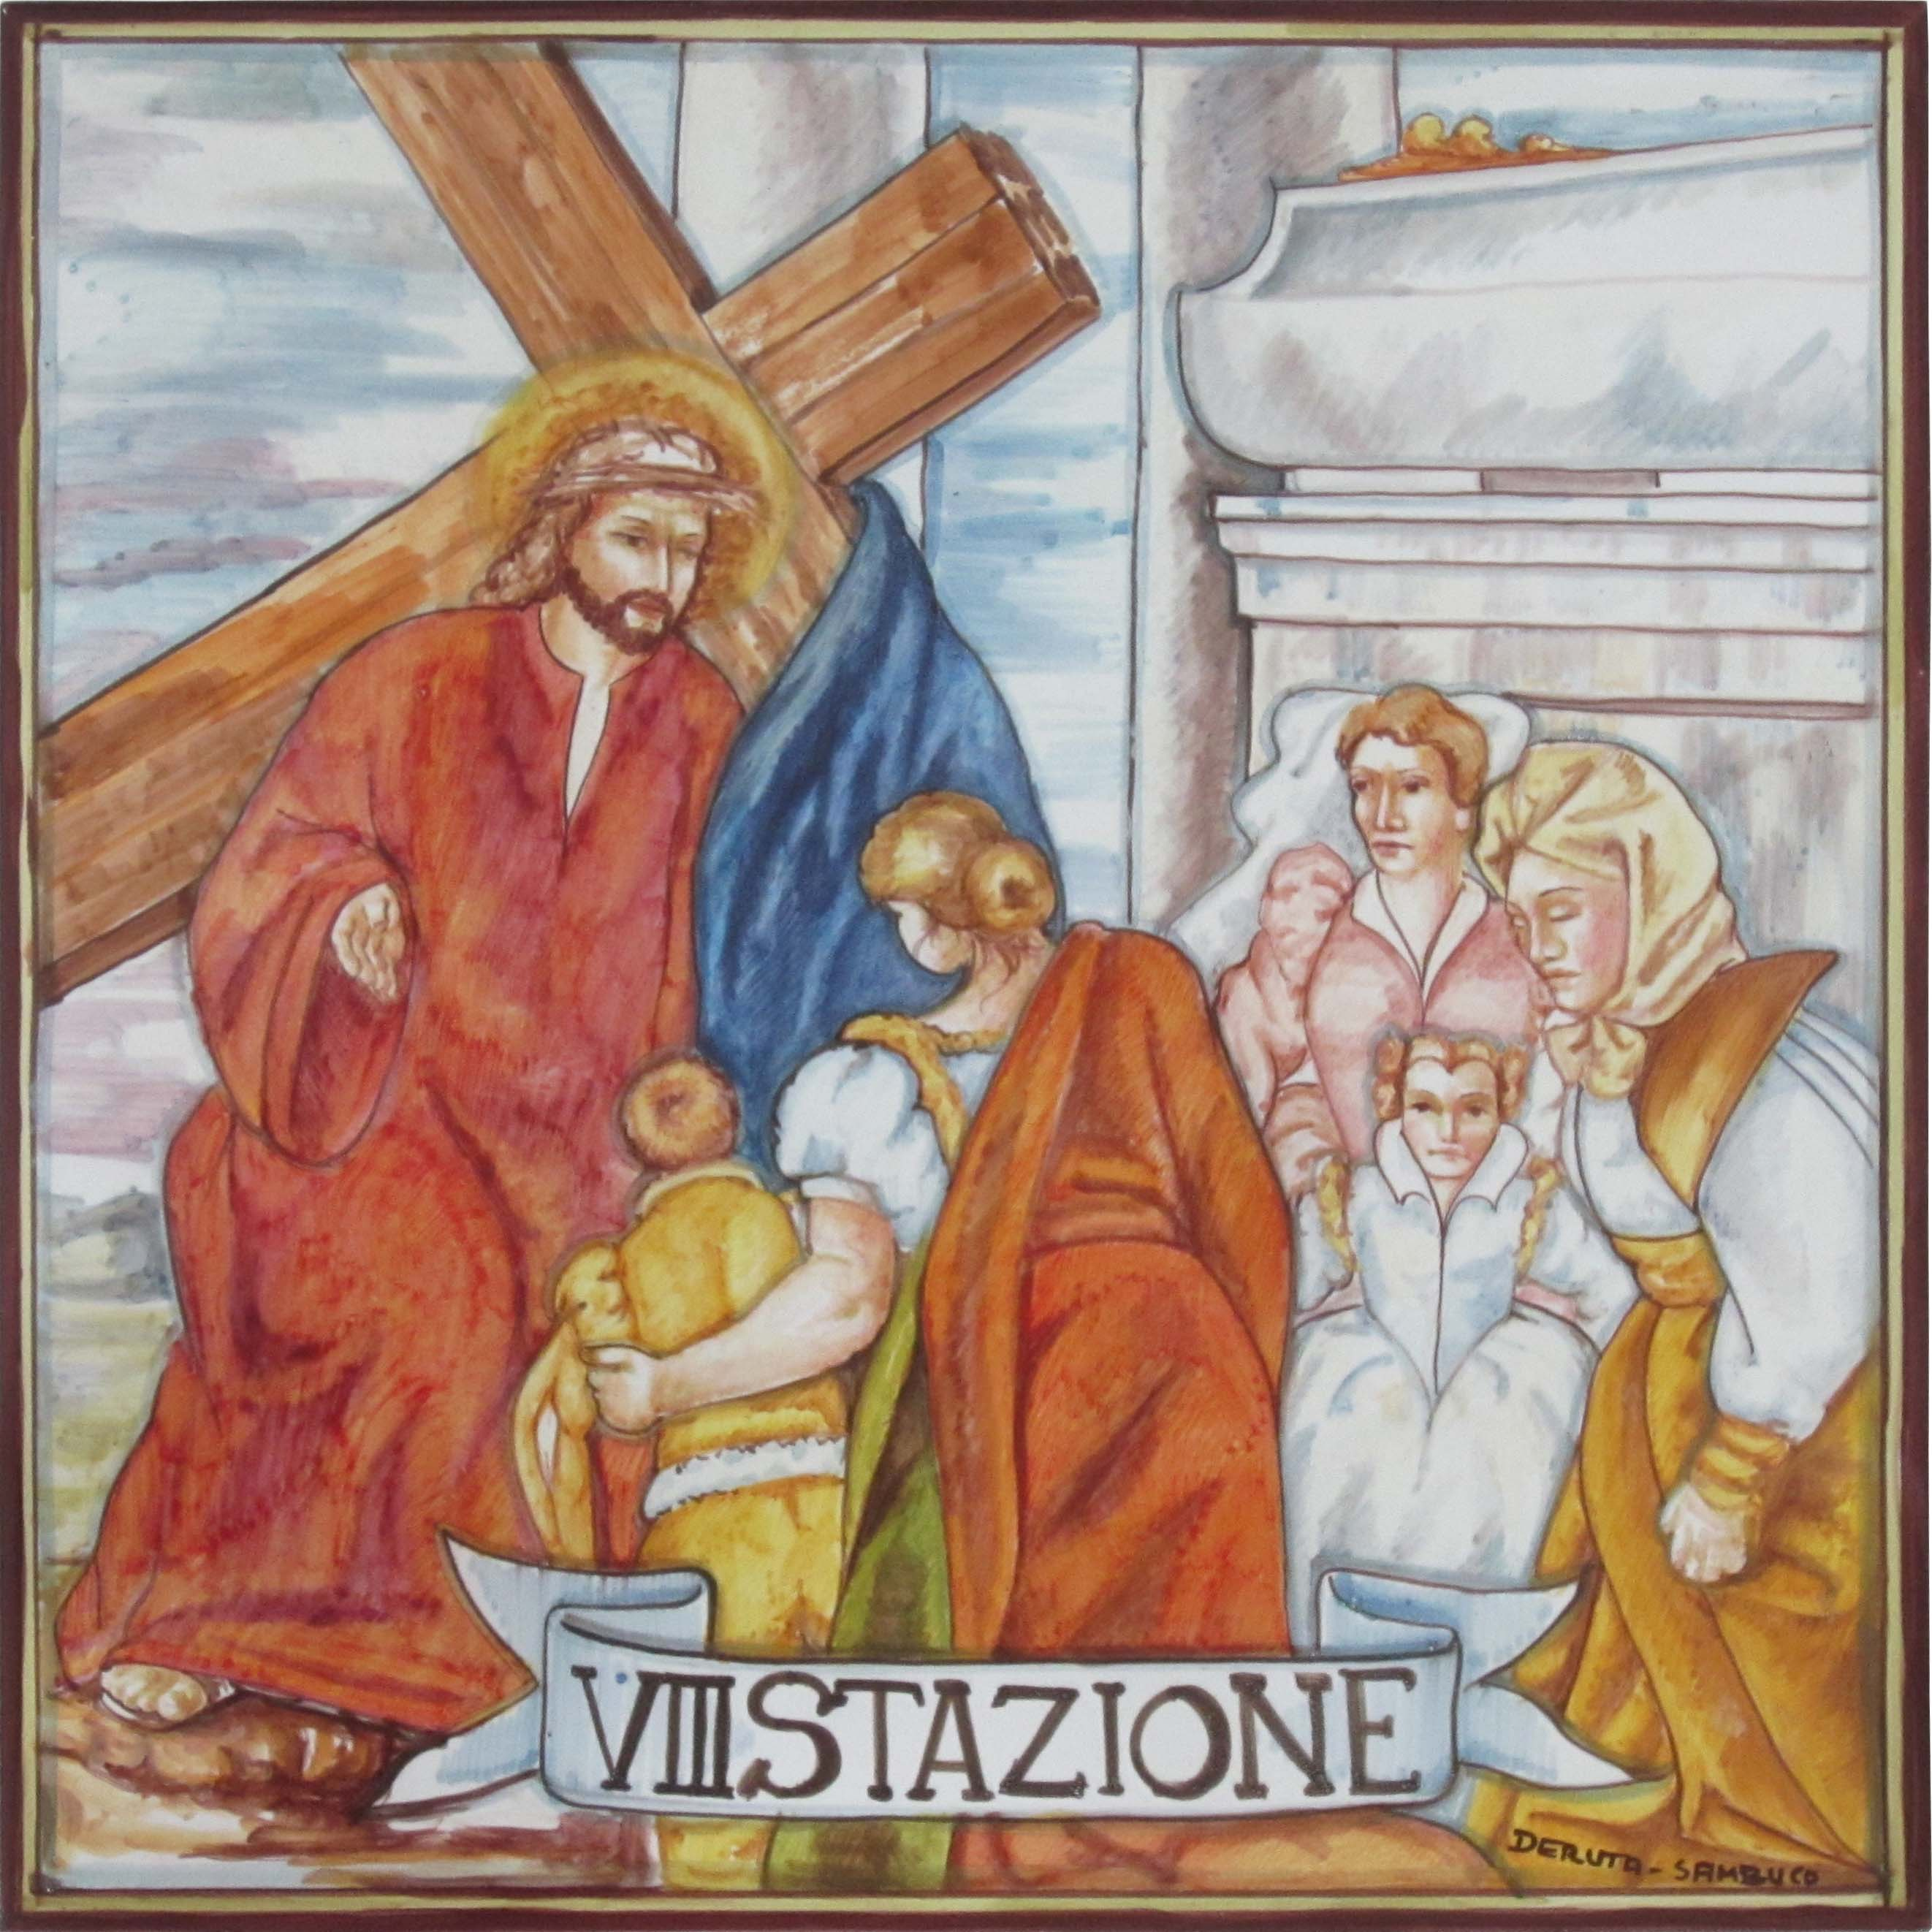 Sambuco Arte Sacra Deruta Via Crucis Stations of the Cross 02